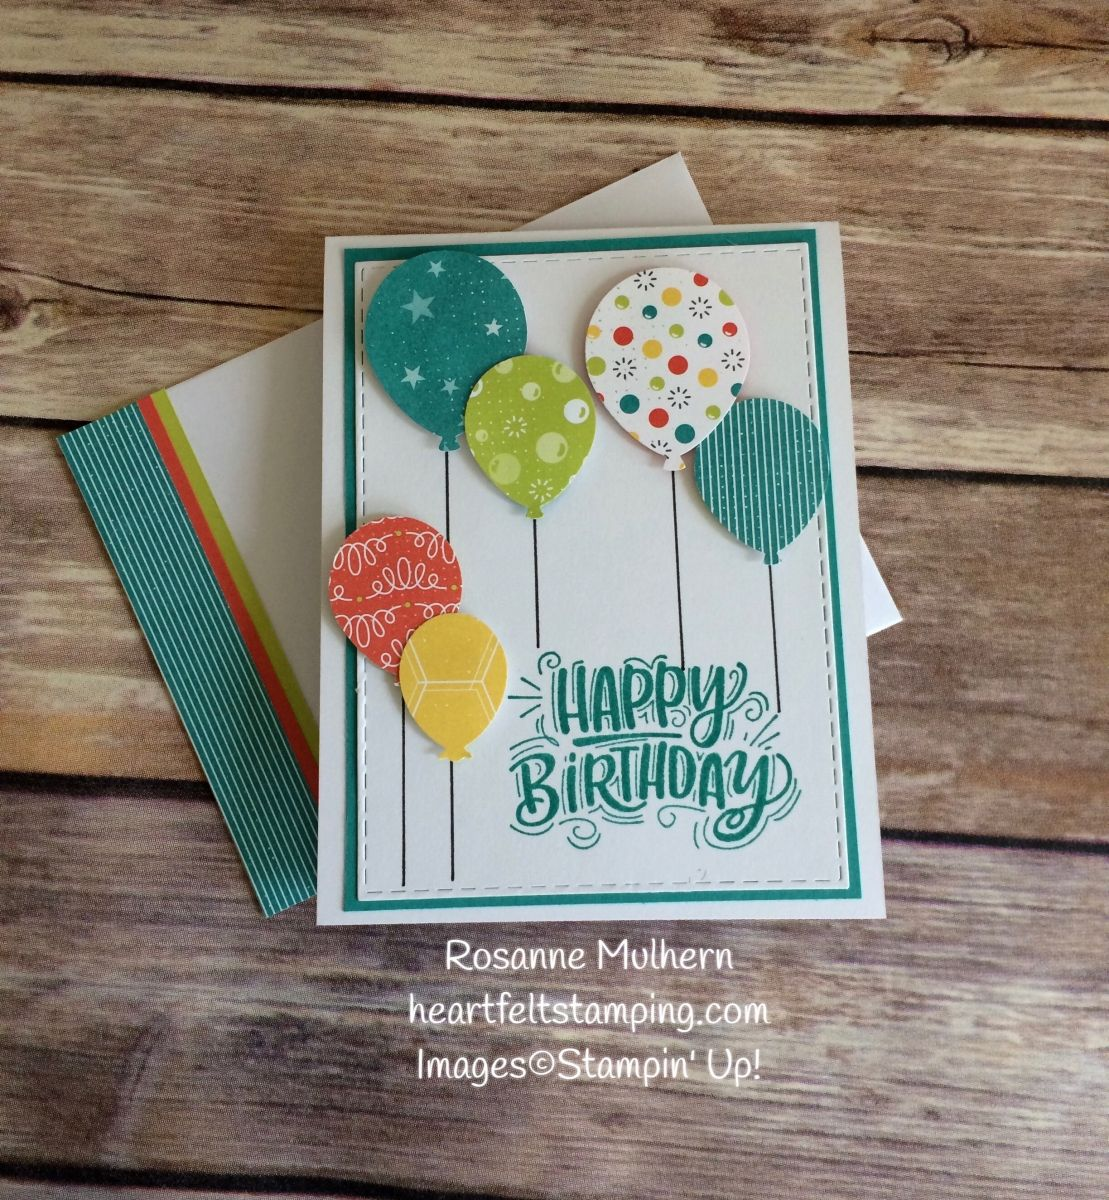 Stampin up bubbles and fizz balloon birthday card rosanne mulhern